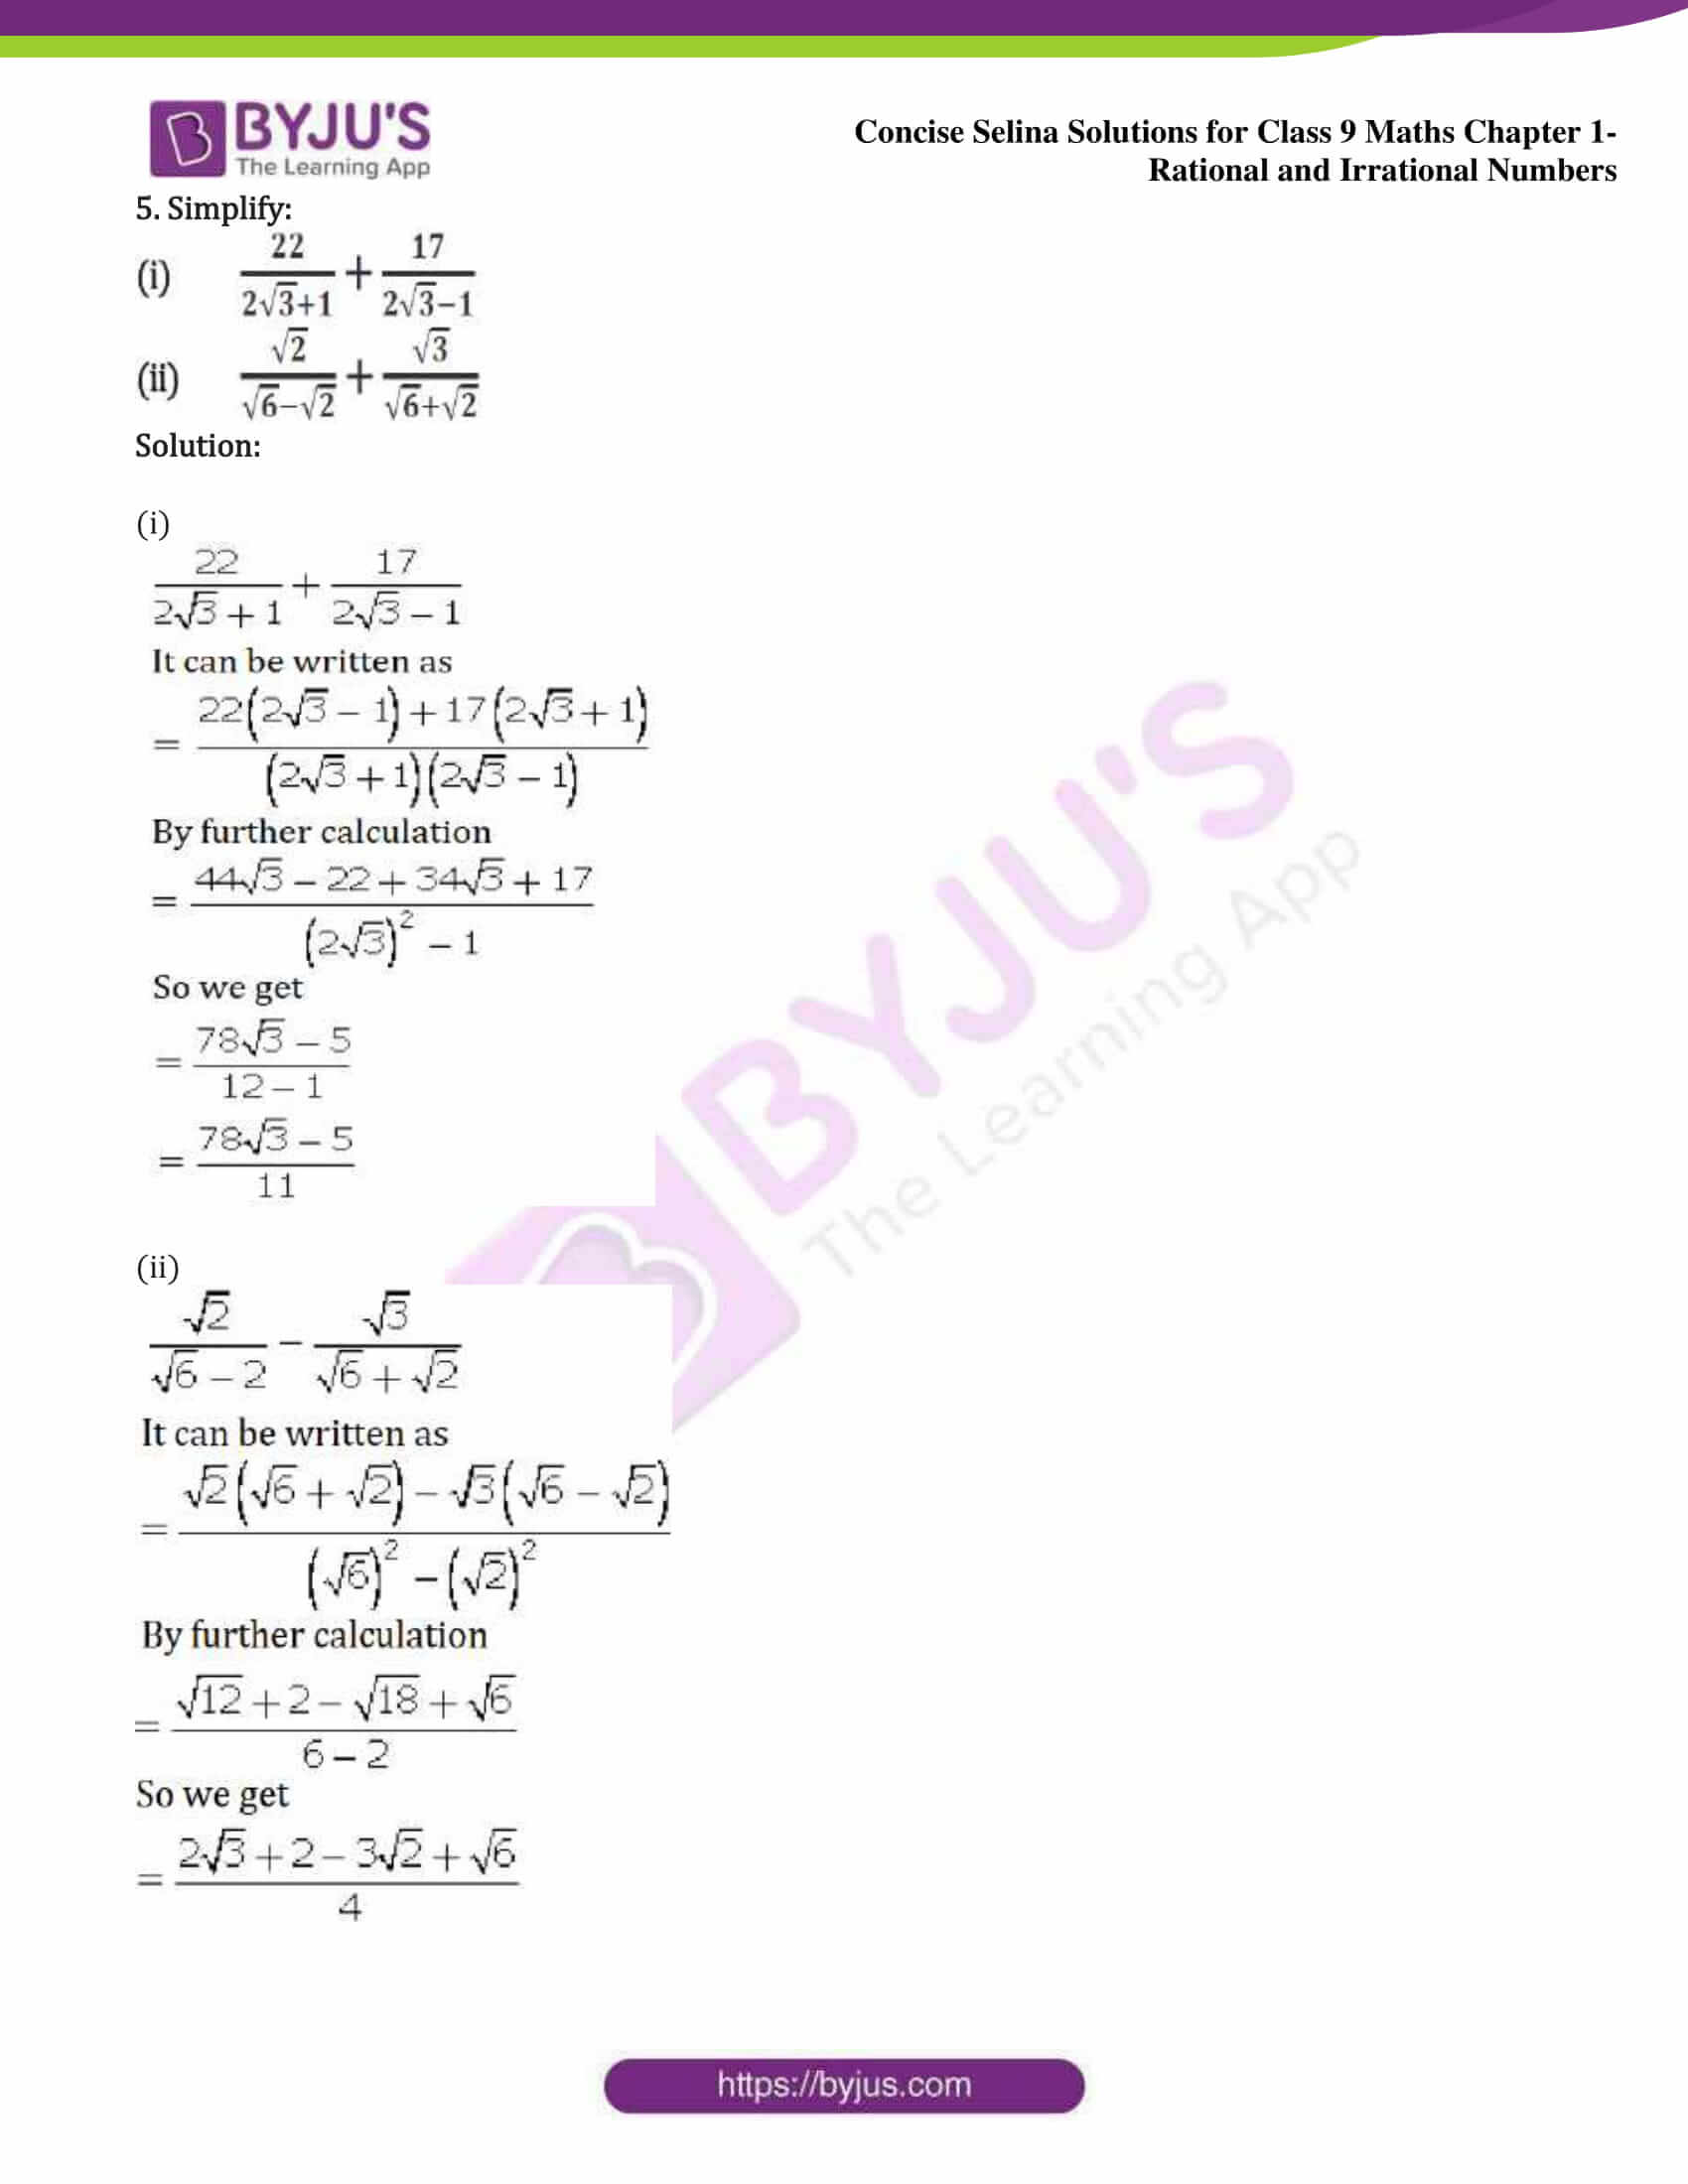 icse class 9 maths may13 selina solutions chapter 1 rational and irrational numbers 22